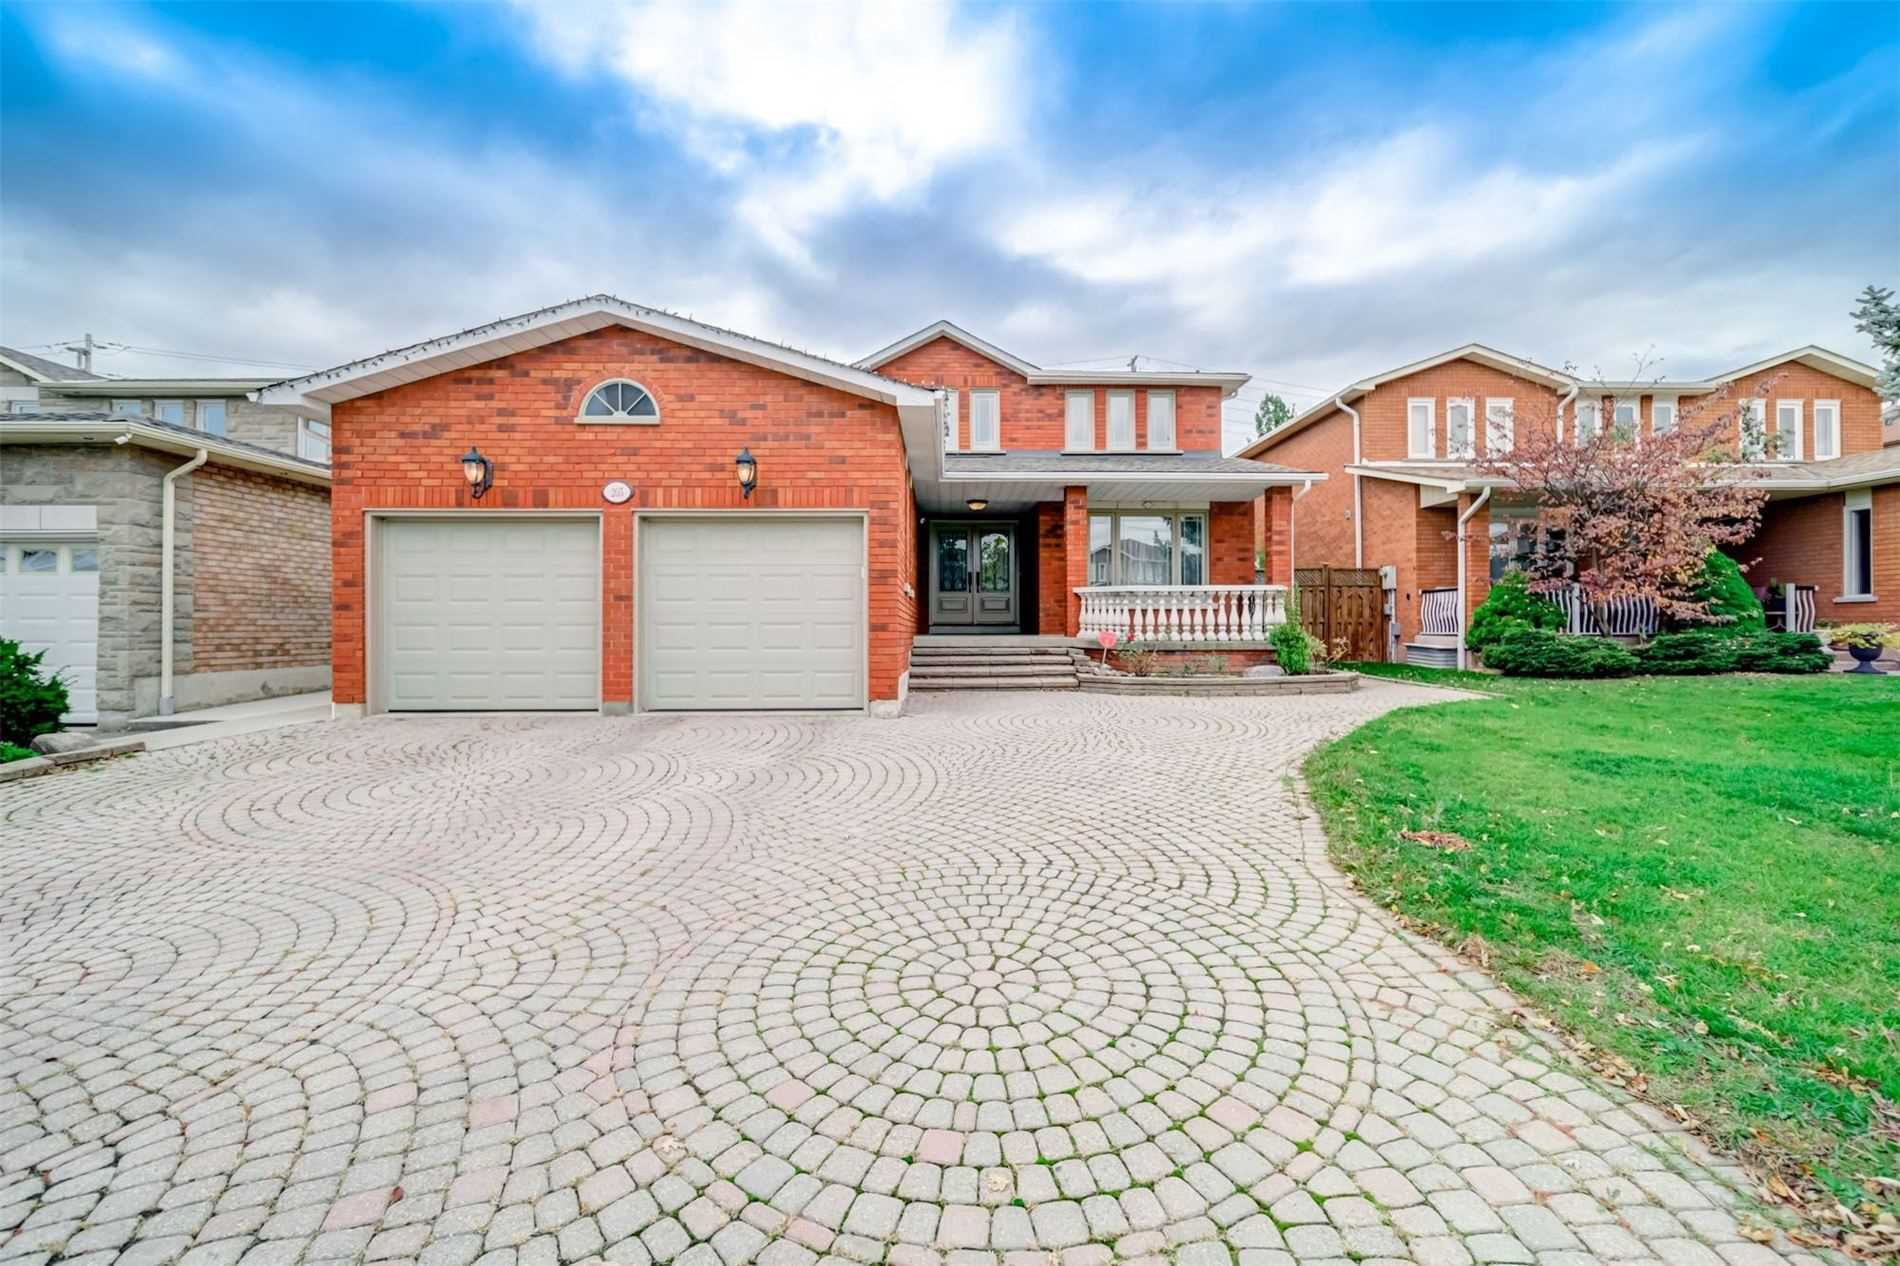 205 Torii St, Vaughan, Ontario L4L 5L2, 4 Bedrooms Bedrooms, ,4 BathroomsBathrooms,Detached,For Sale,Torii,N4961638